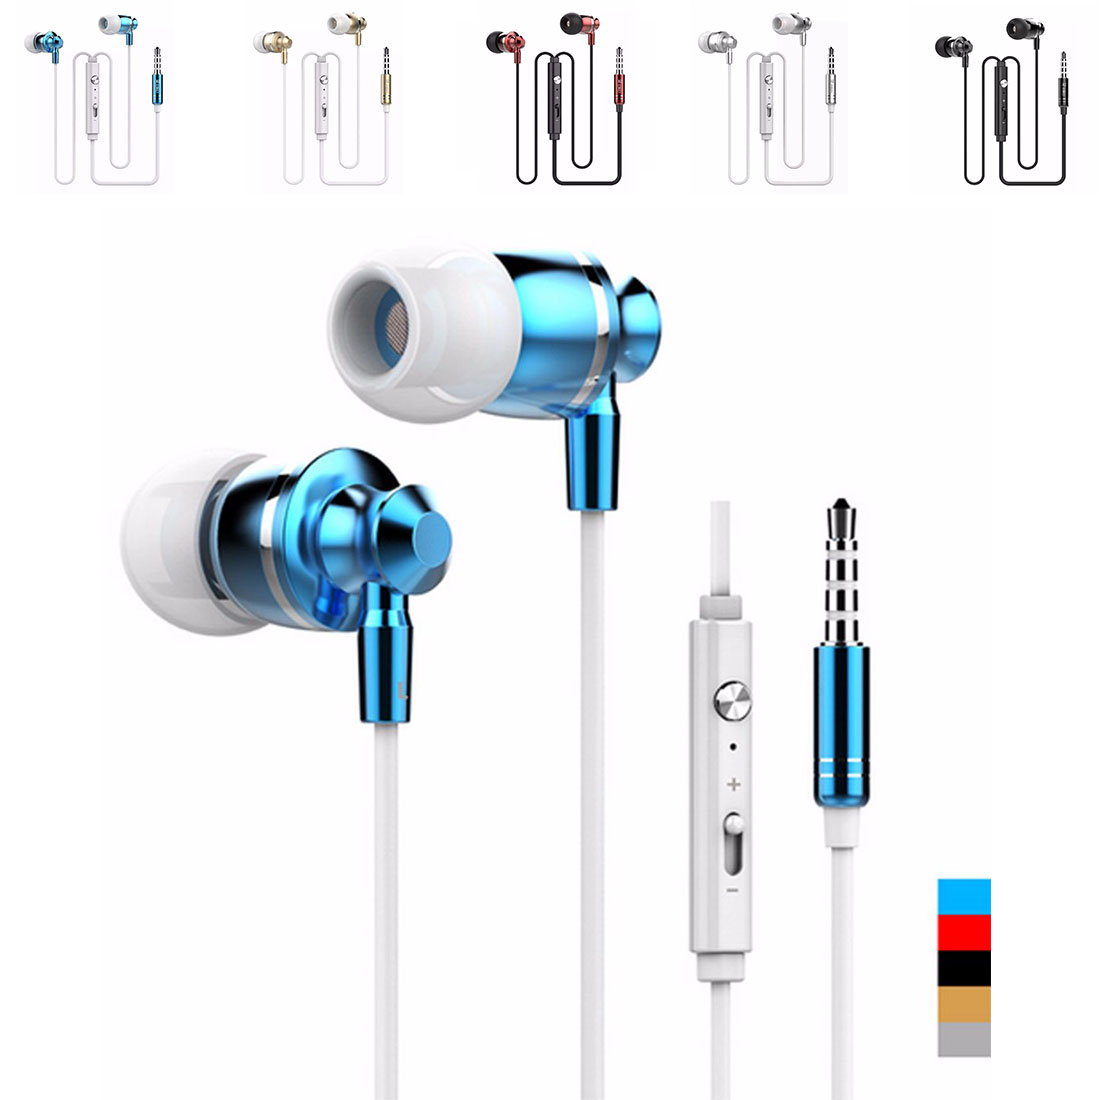 2016 Hot Selling High Quality Metal 3.5mm Earphones Headphone Super Bass Stereo Earbuds with Mic for mobile phone MP3 MP4 M300 hot high quality sports stereo earphones with mic 3 5mm universal use for mobile phones mp3 mp4 gg11101